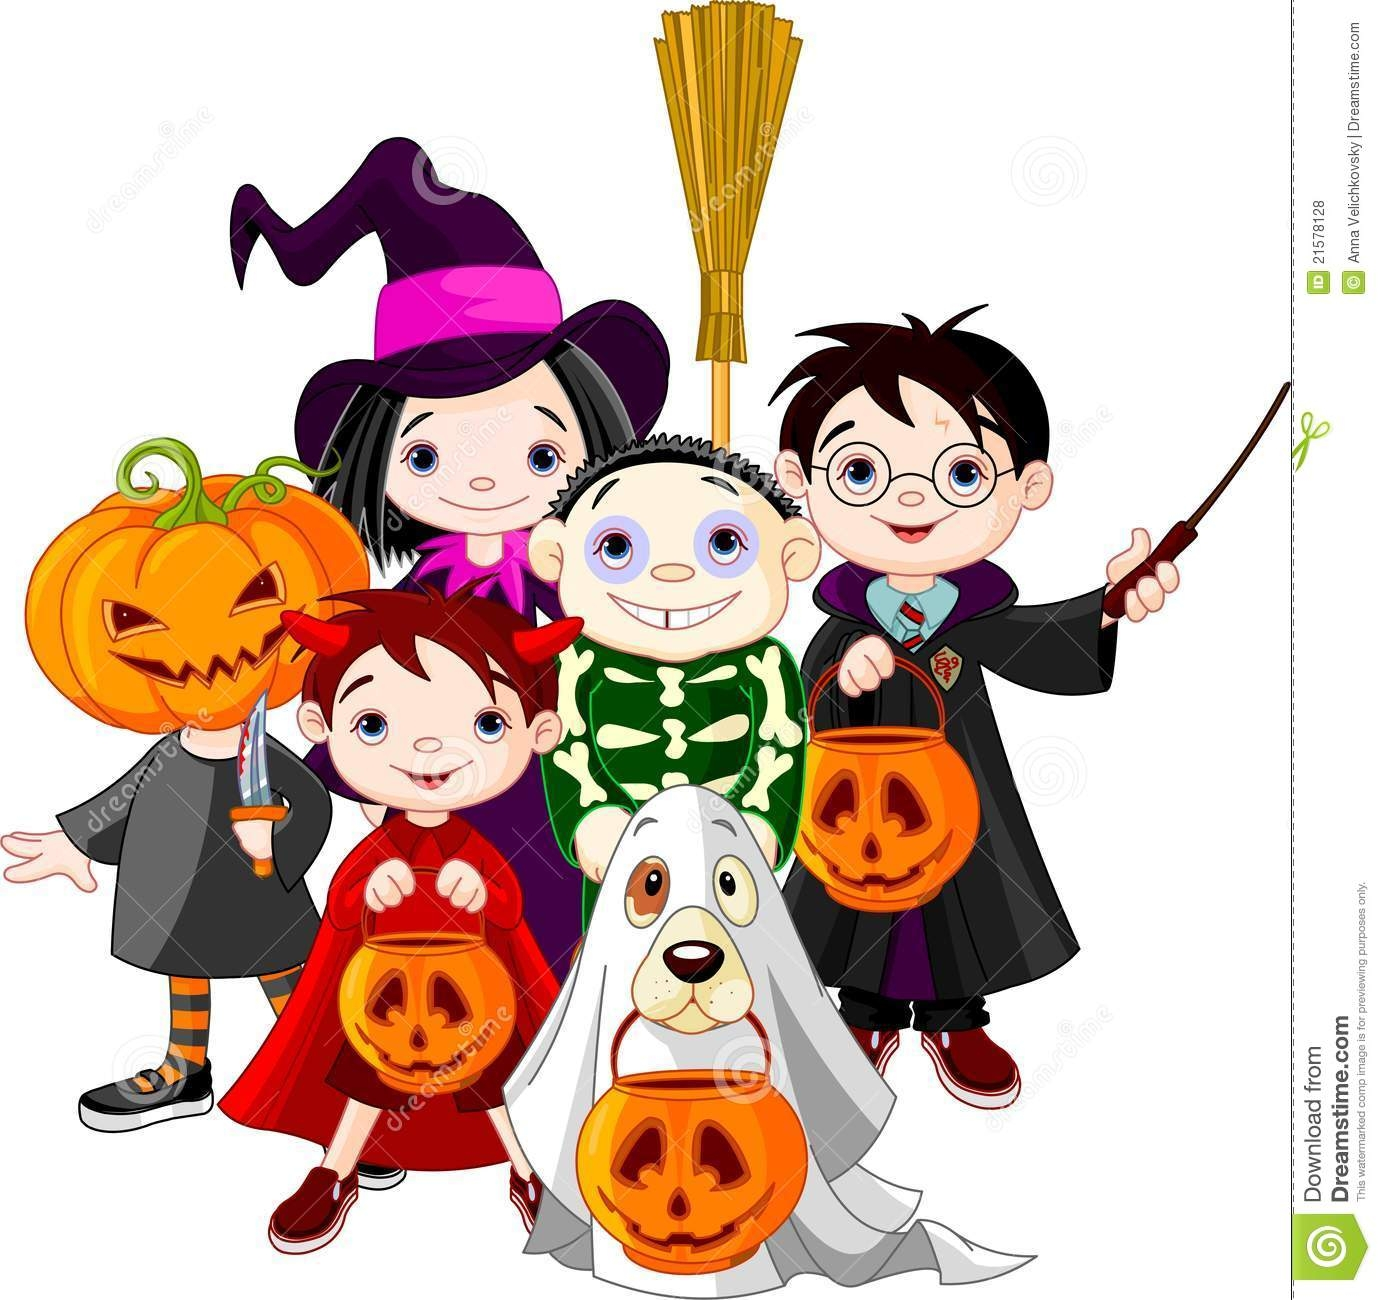 Halloween trick or treating .-Halloween trick or treating .-10